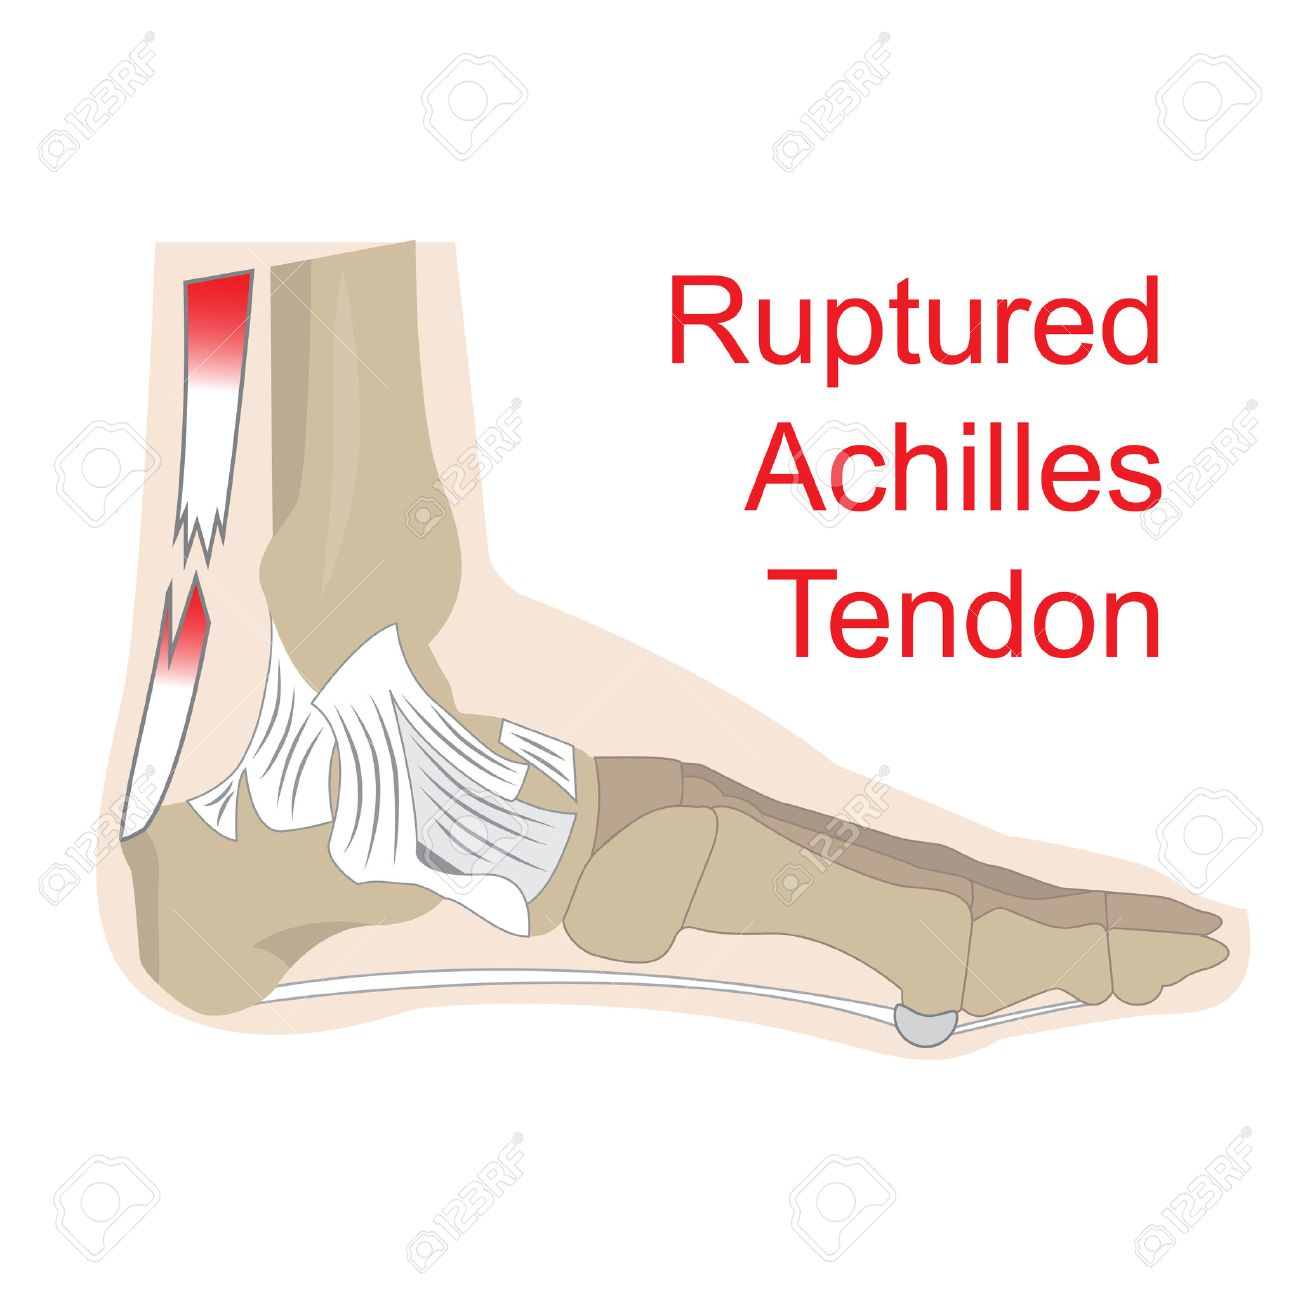 Vector Illustration Of Achilles Tendon Rupture. Image Of Foot ...